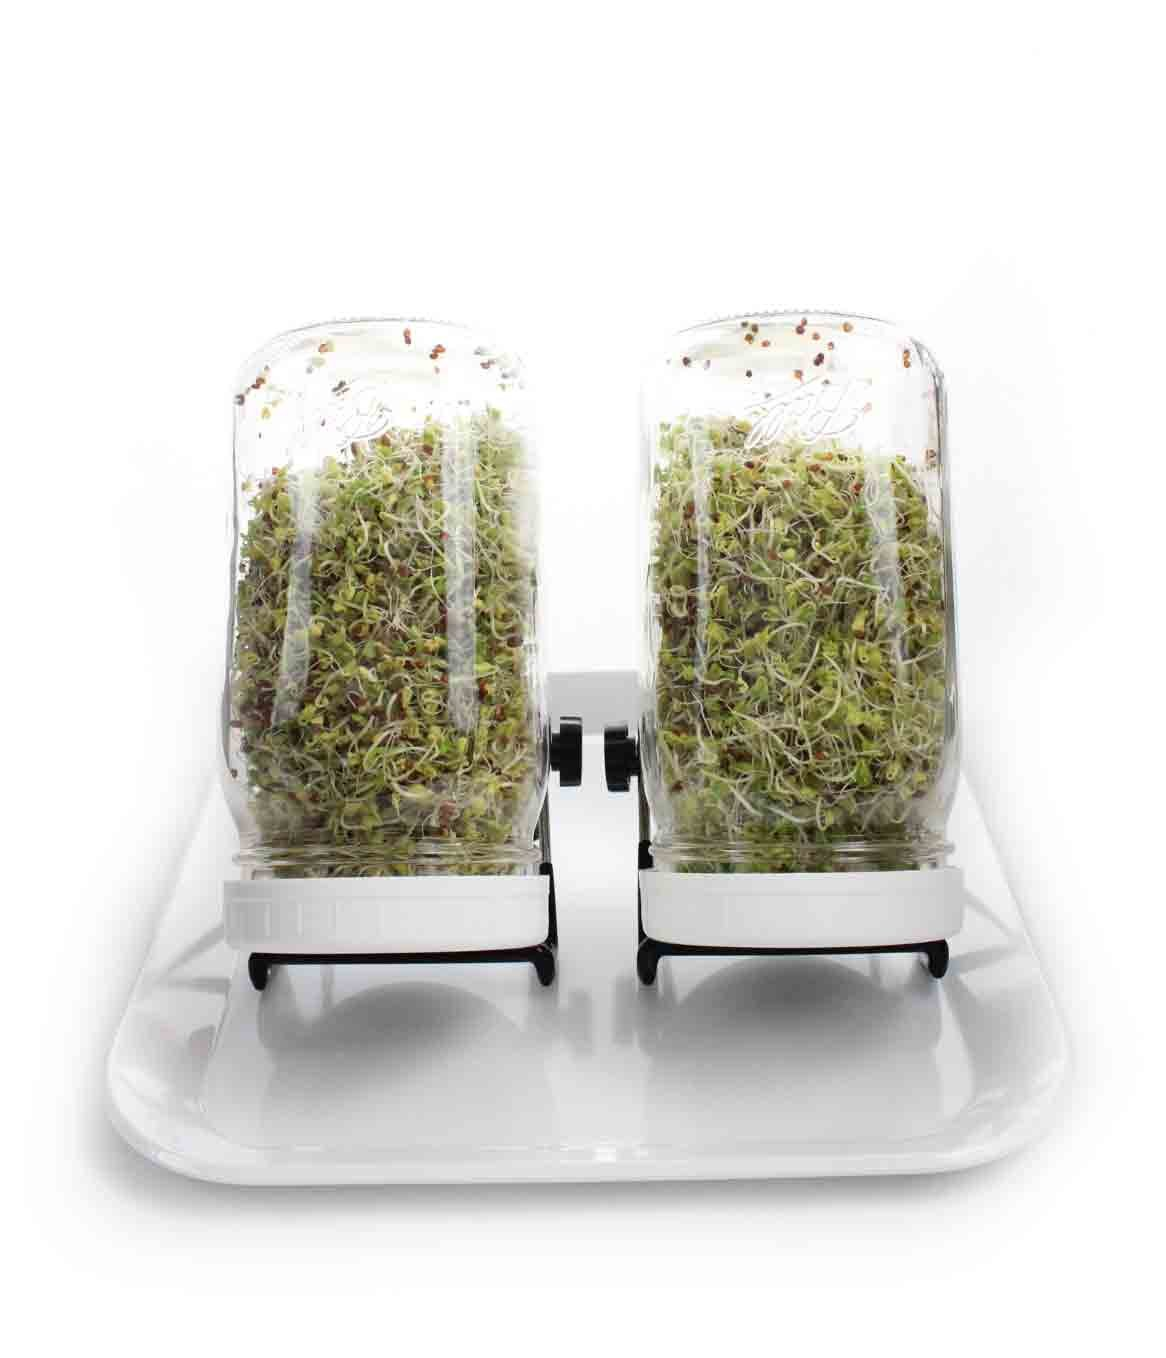 Sprouting Kit Deluxe Set includes 2 Ball Glass Quart Jars, 2 Speed Strainer Sprouting Lids, 2 Foldable Jar Stands, Tray, and Sprout Directions